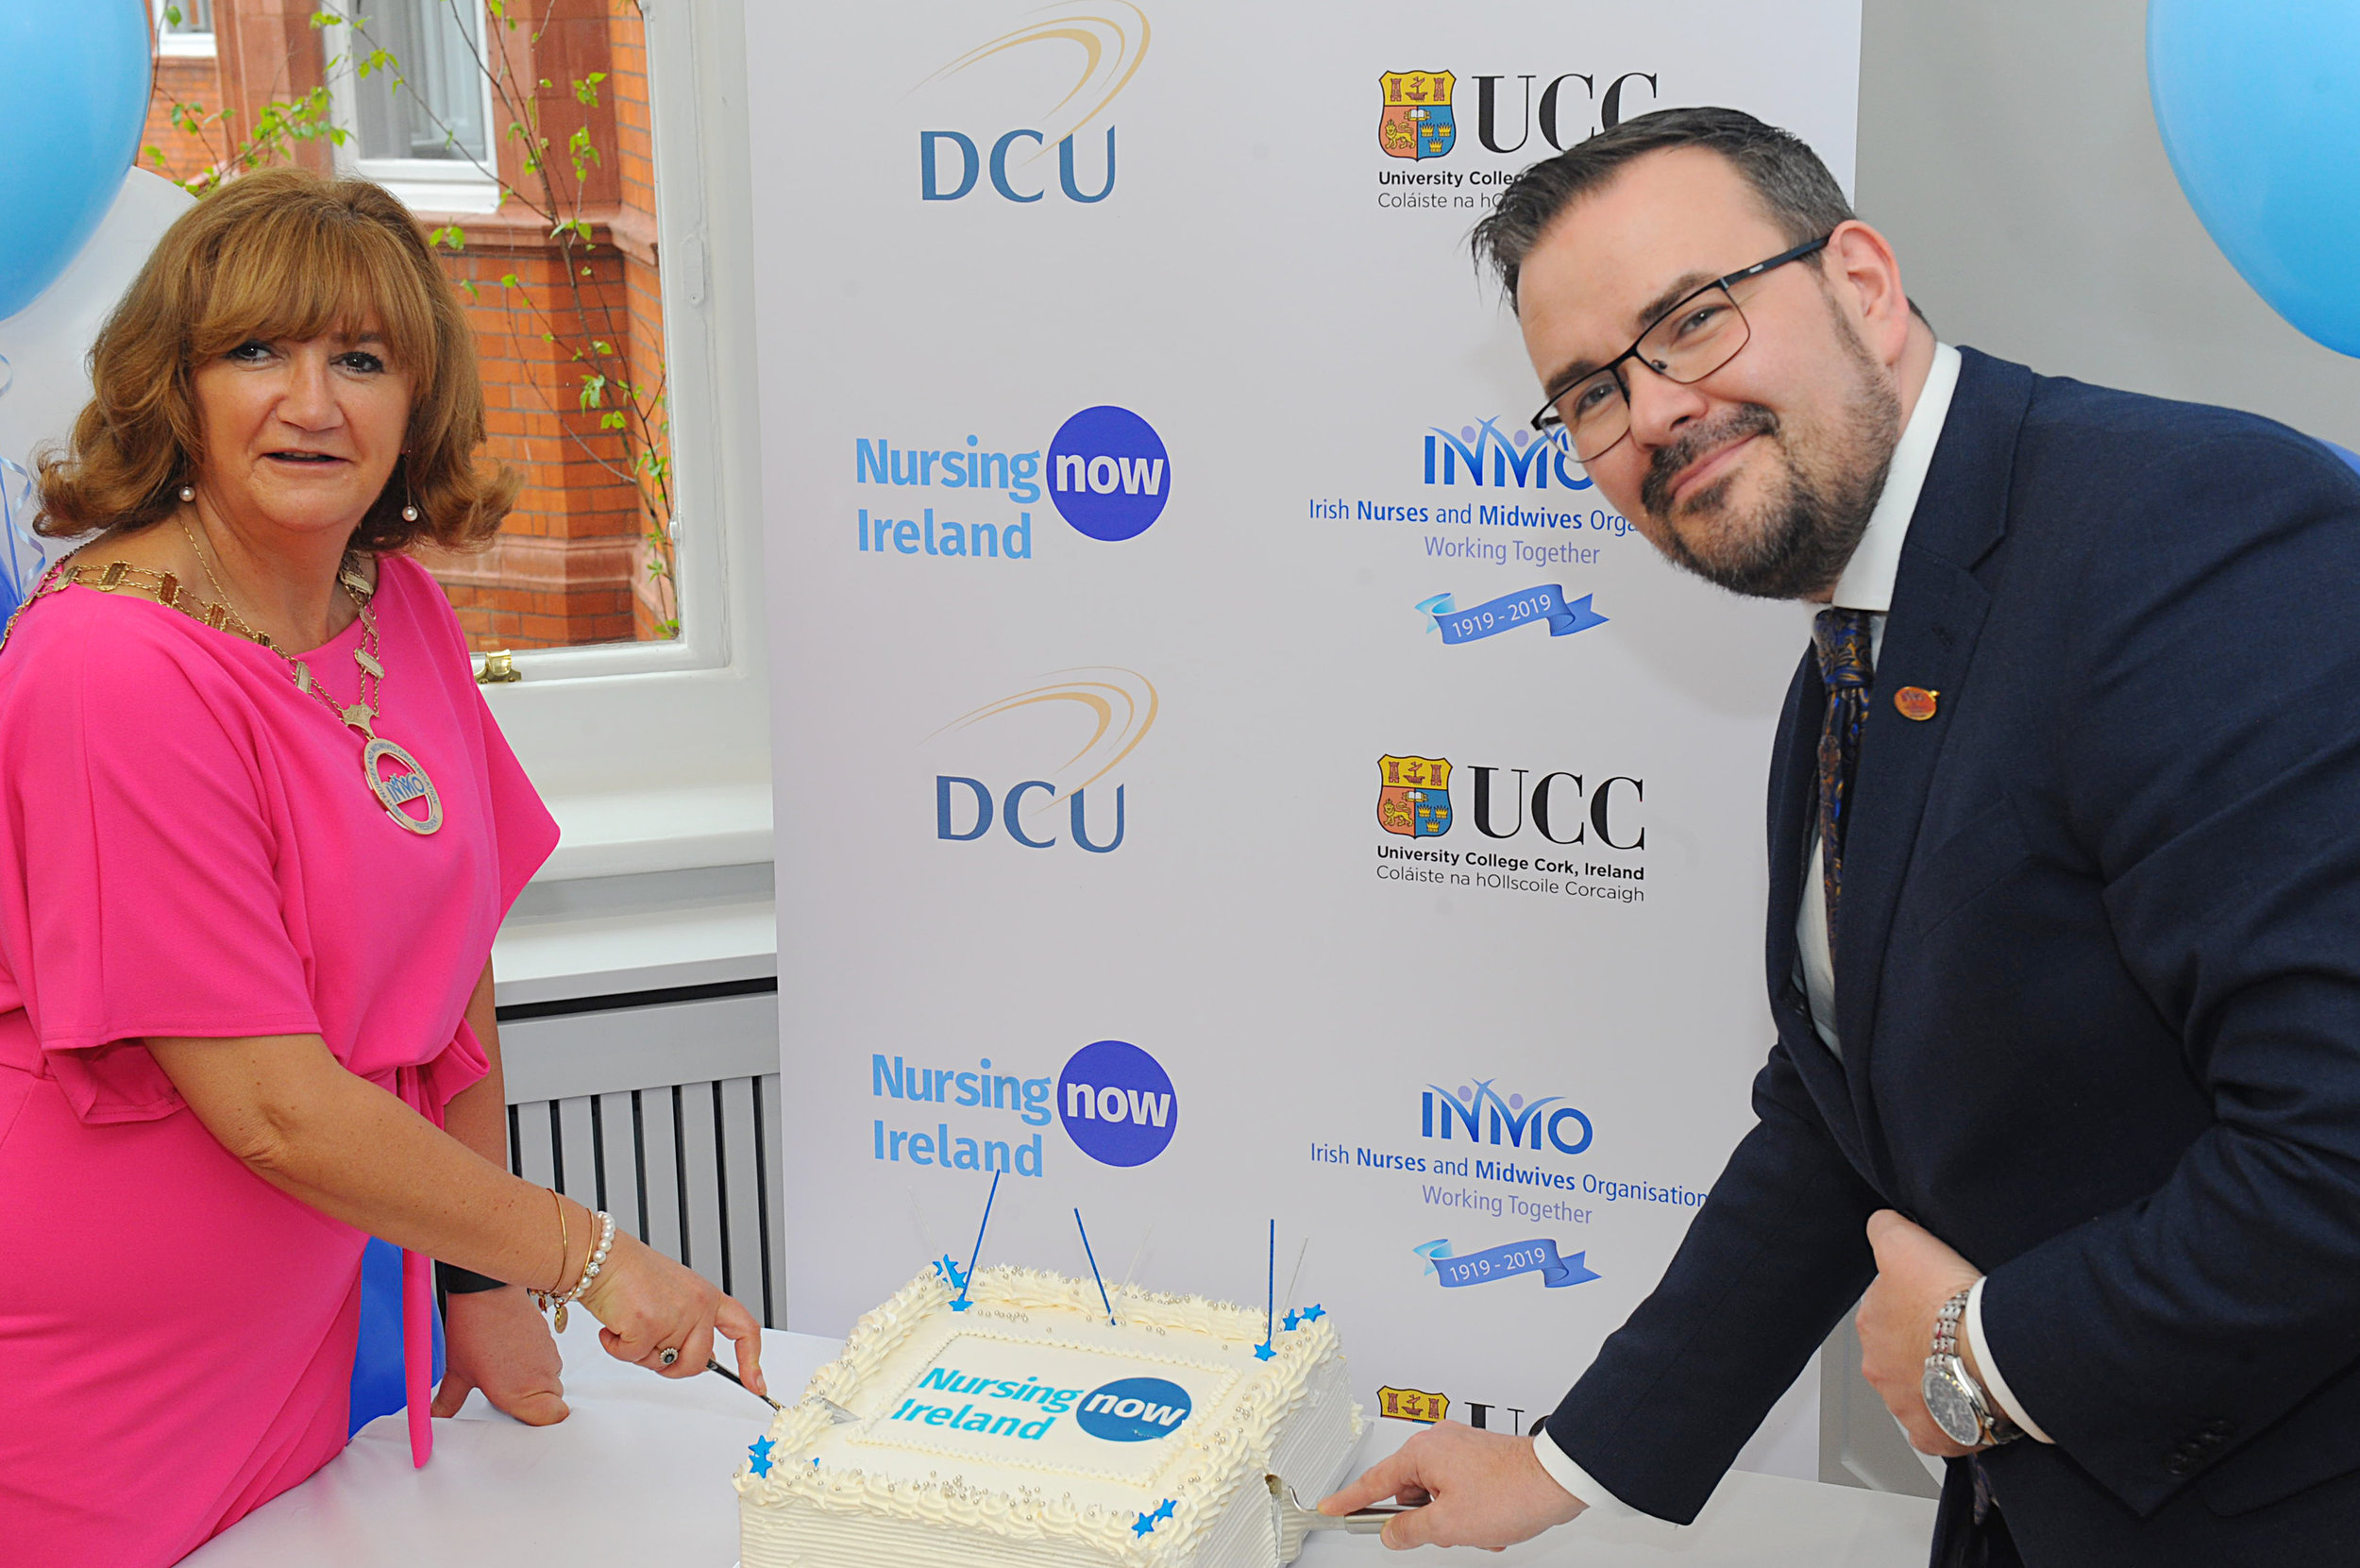 Launch day - Martina Harkin Kelly, INMO President and Dr. Edward Mathews, Director of Professional and Regulatory Services at the Nursing Now Ireland launch